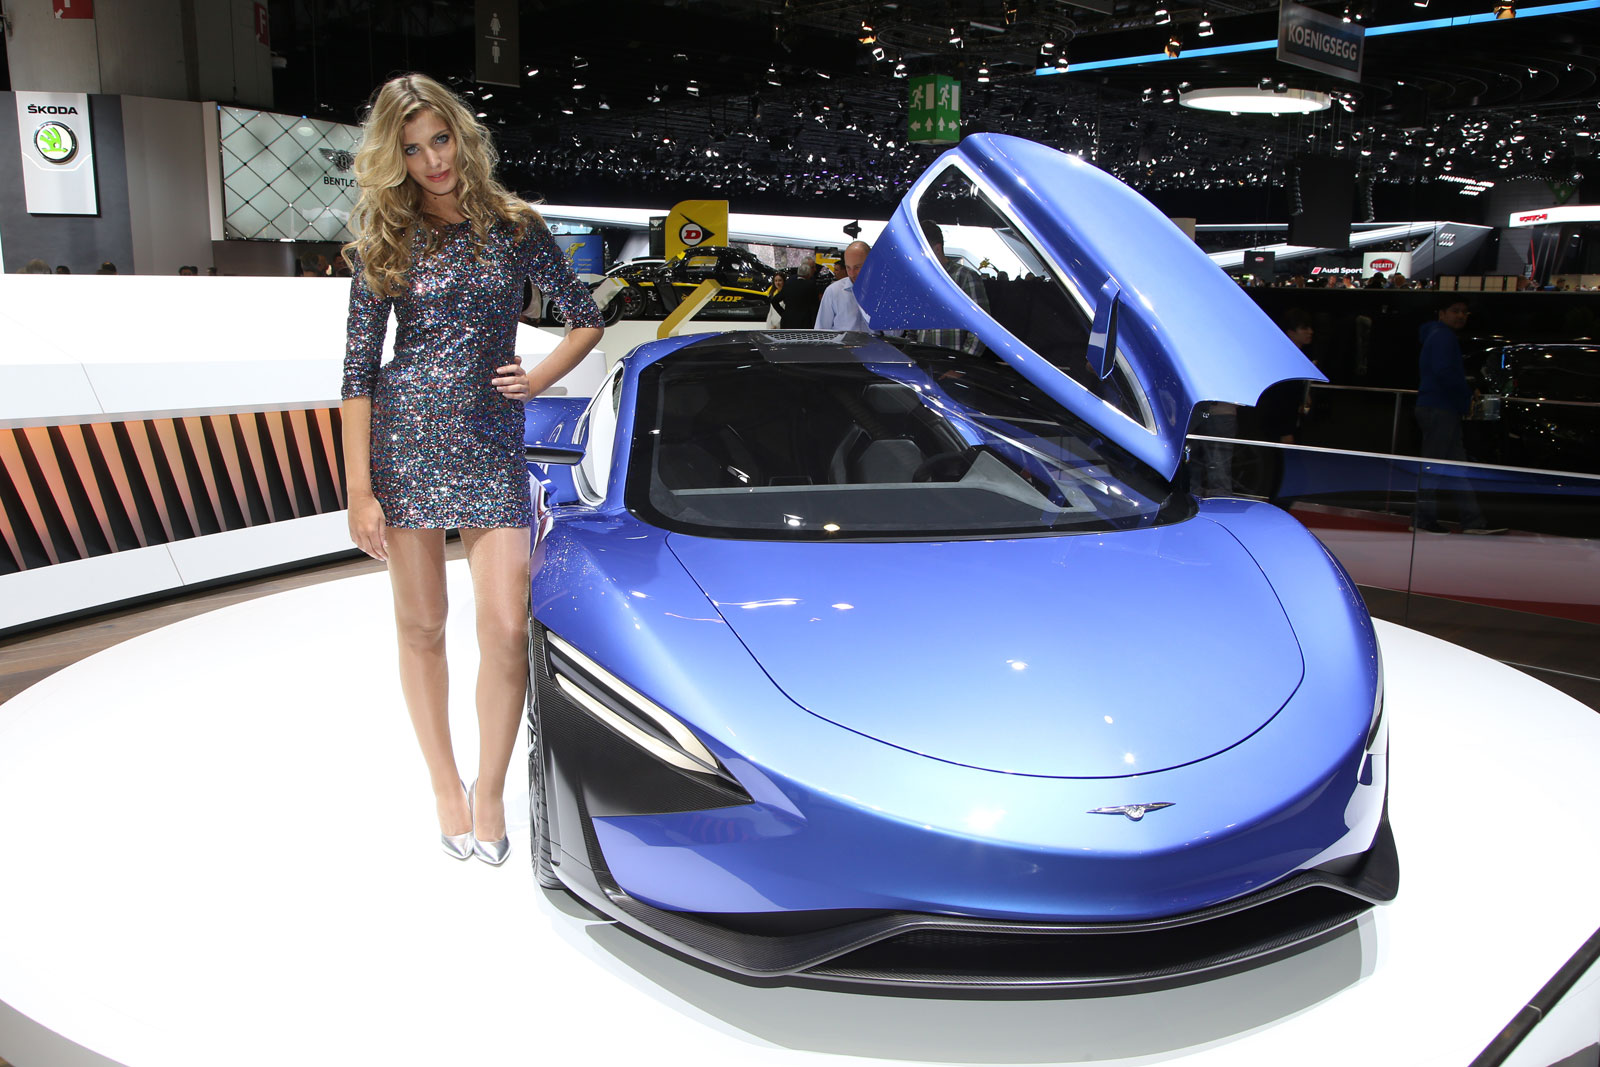 2016 Techrules At96 Trev Supercar Concept: Techrules GT96 TREV Supercar Concept At Geneva 2016